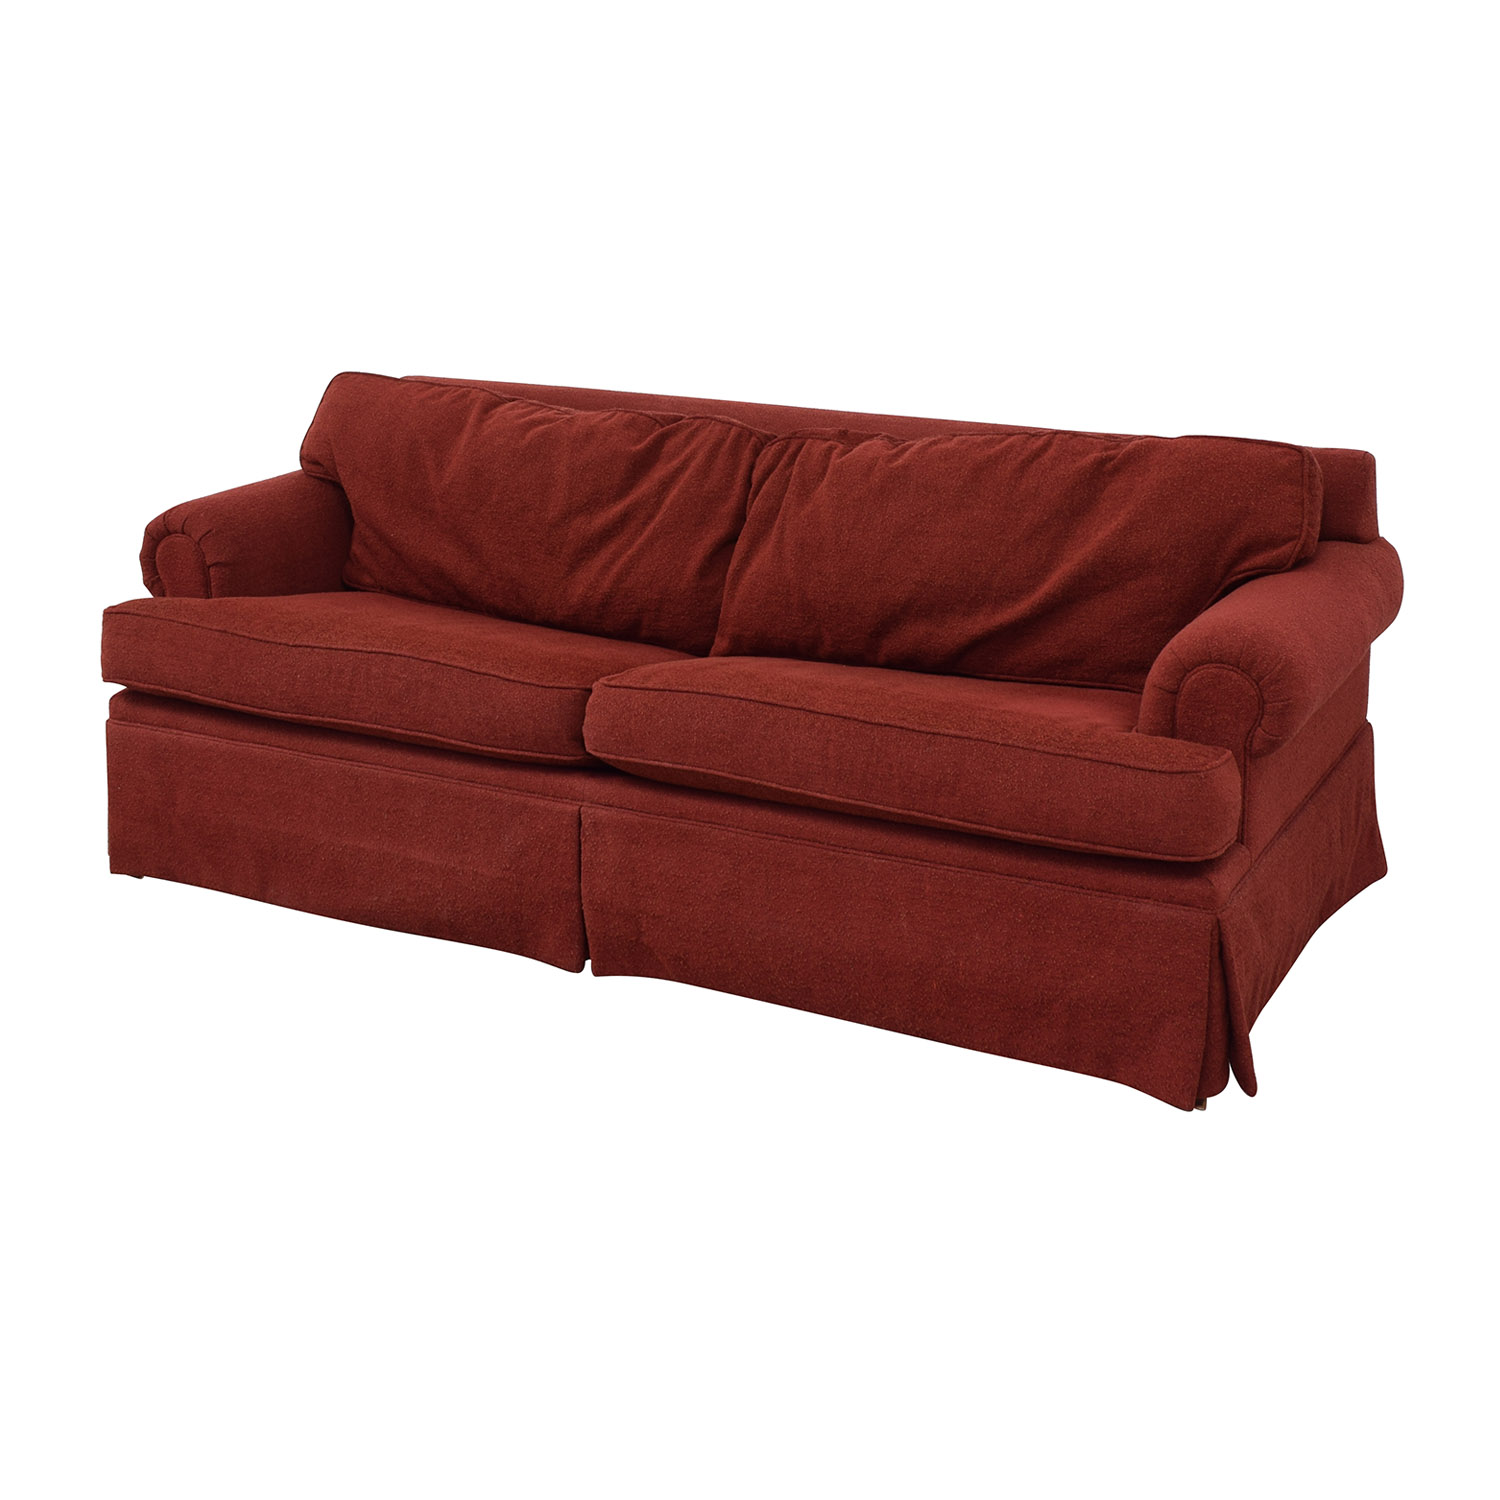 Baker Furniture Baker Furniture Milling Road Red Queen Pull Out Sofa nyc